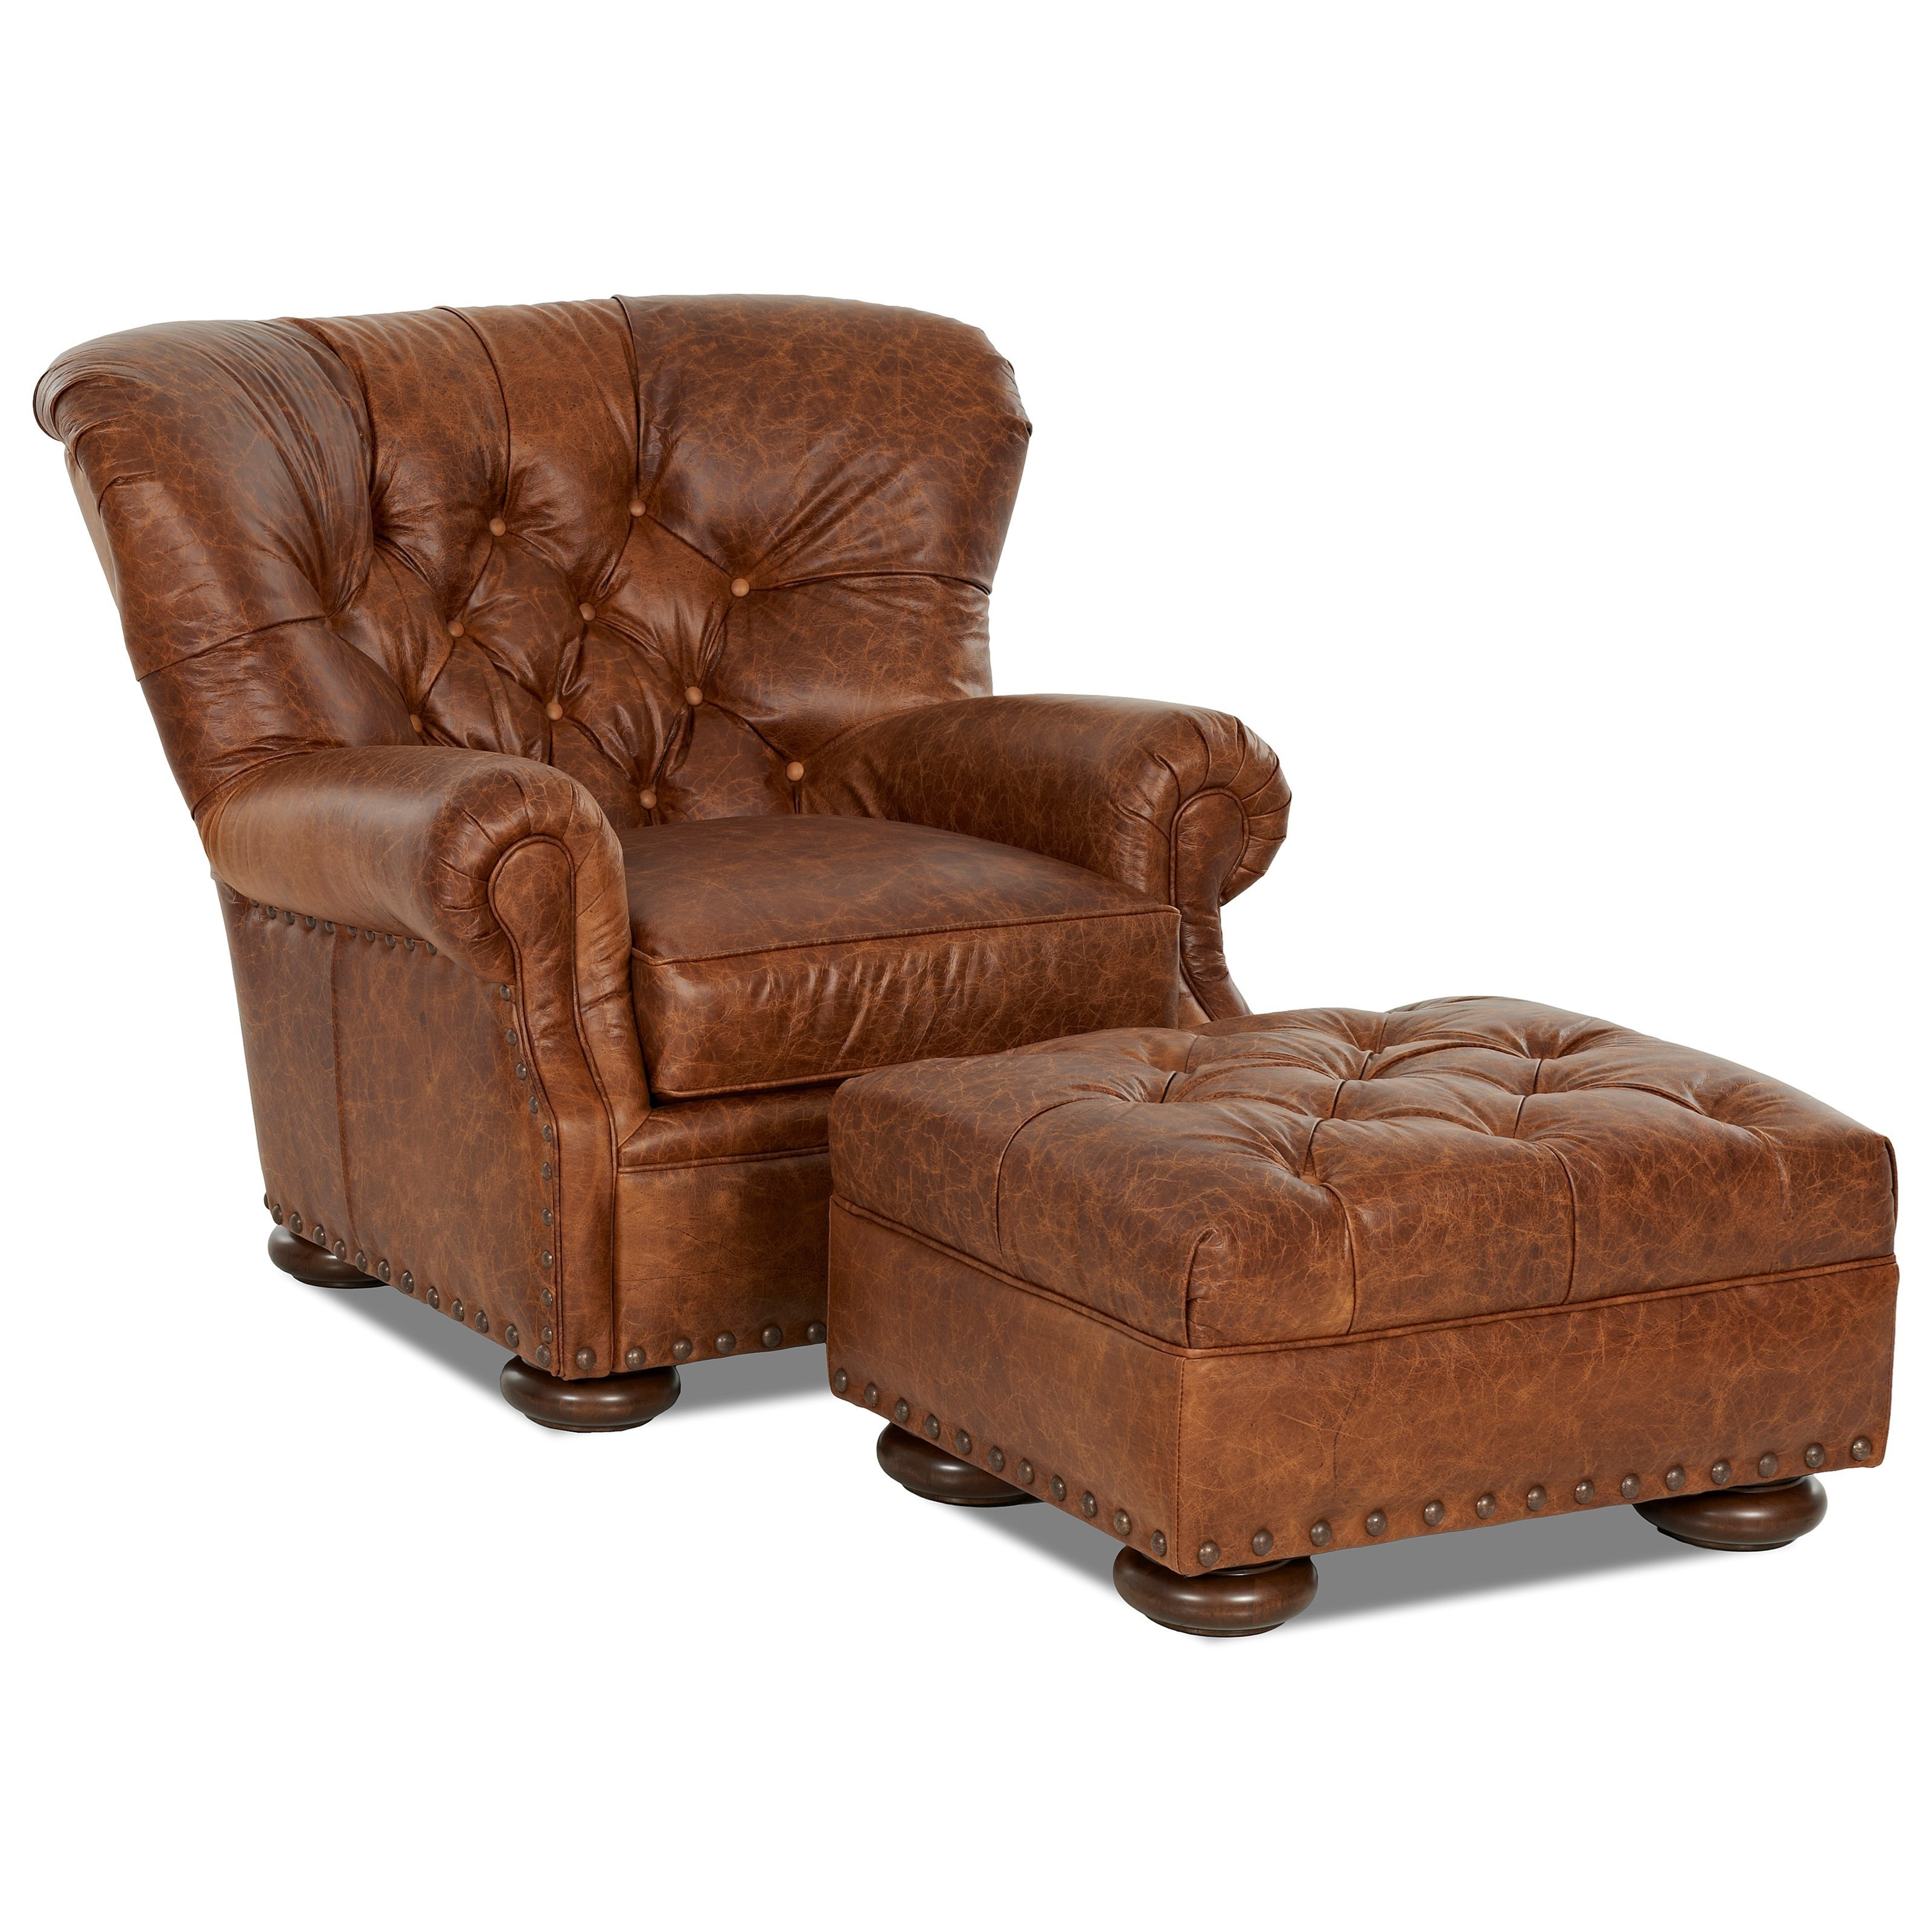 klaussner aspen tufted leather chair and ottoman set. Black Bedroom Furniture Sets. Home Design Ideas